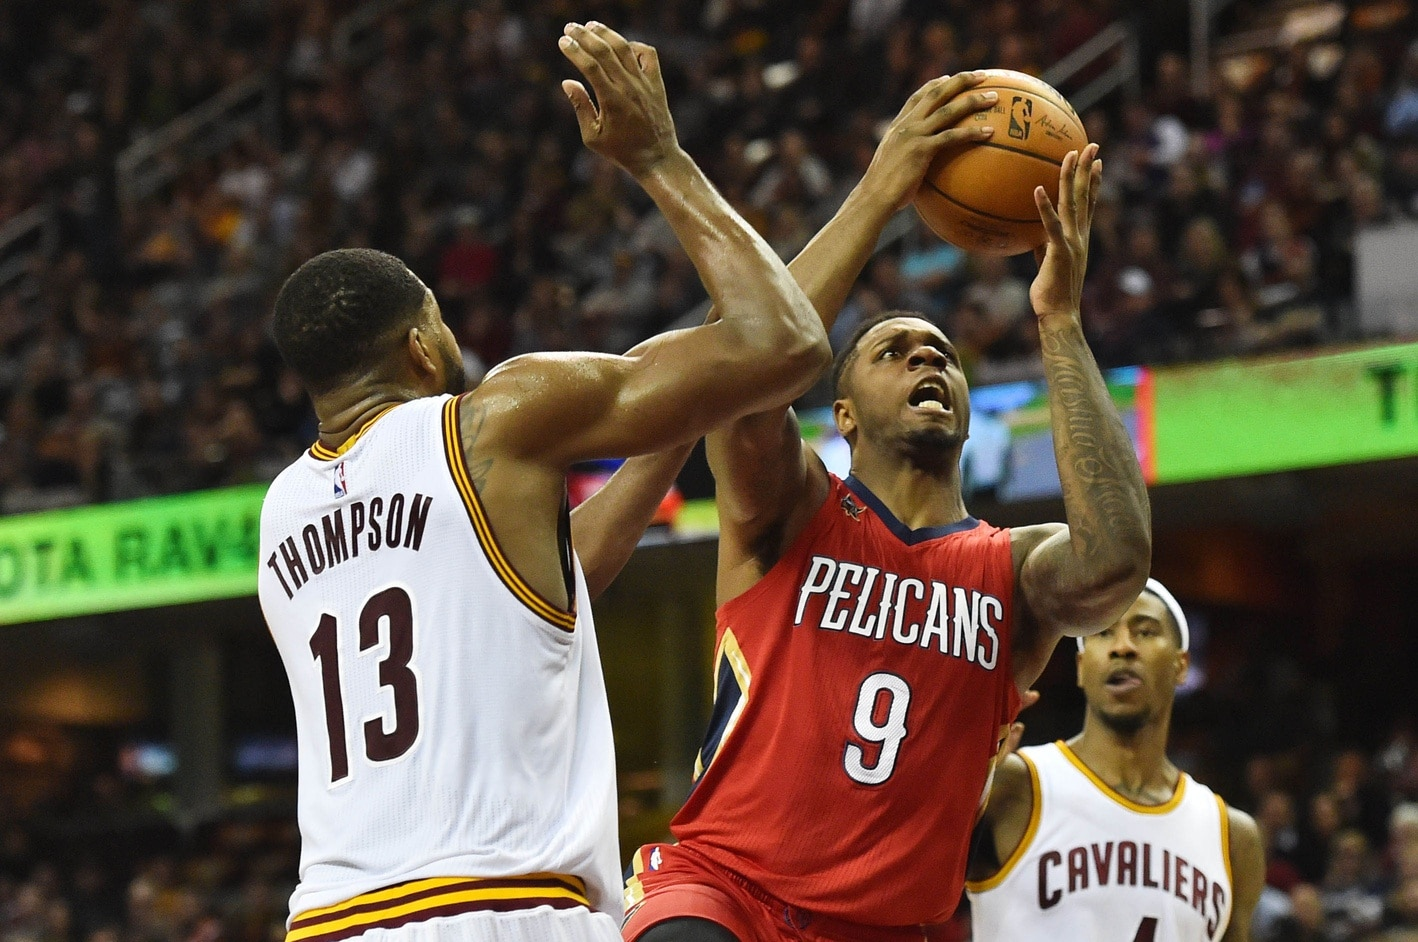 Jan 2, 2017; Cleveland, OH, USA; New Orleans Pelicans forward Terrence Jones (9) drives to the basket against Cleveland Cavaliers center Tristan Thompson (13) during the first half at Quicken Loans Arena. Mandatory Credit: Ken Blaze-USA TODAY Sports